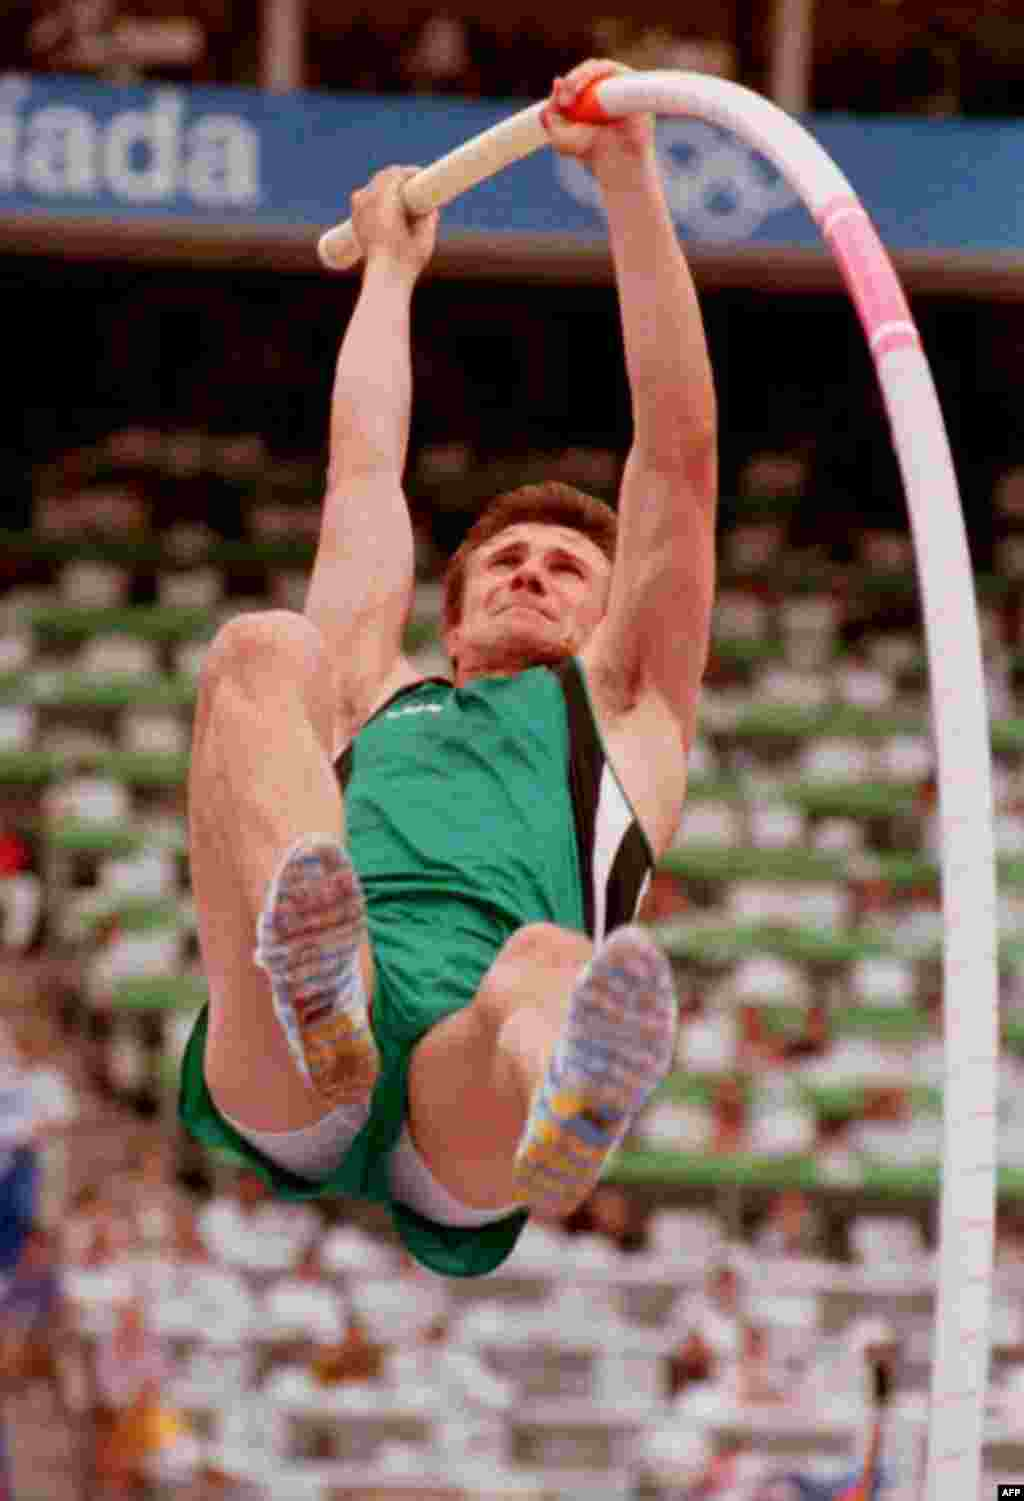 """Ukrainian pole vaulter Sergei Bubka dominated the sport for more than a decade, winning six consecutive world titles. However, he famously suffered from an """"Olympics curse,"""" winning only one gold medal (for the Soviet Union in Seoul in 1988)."""